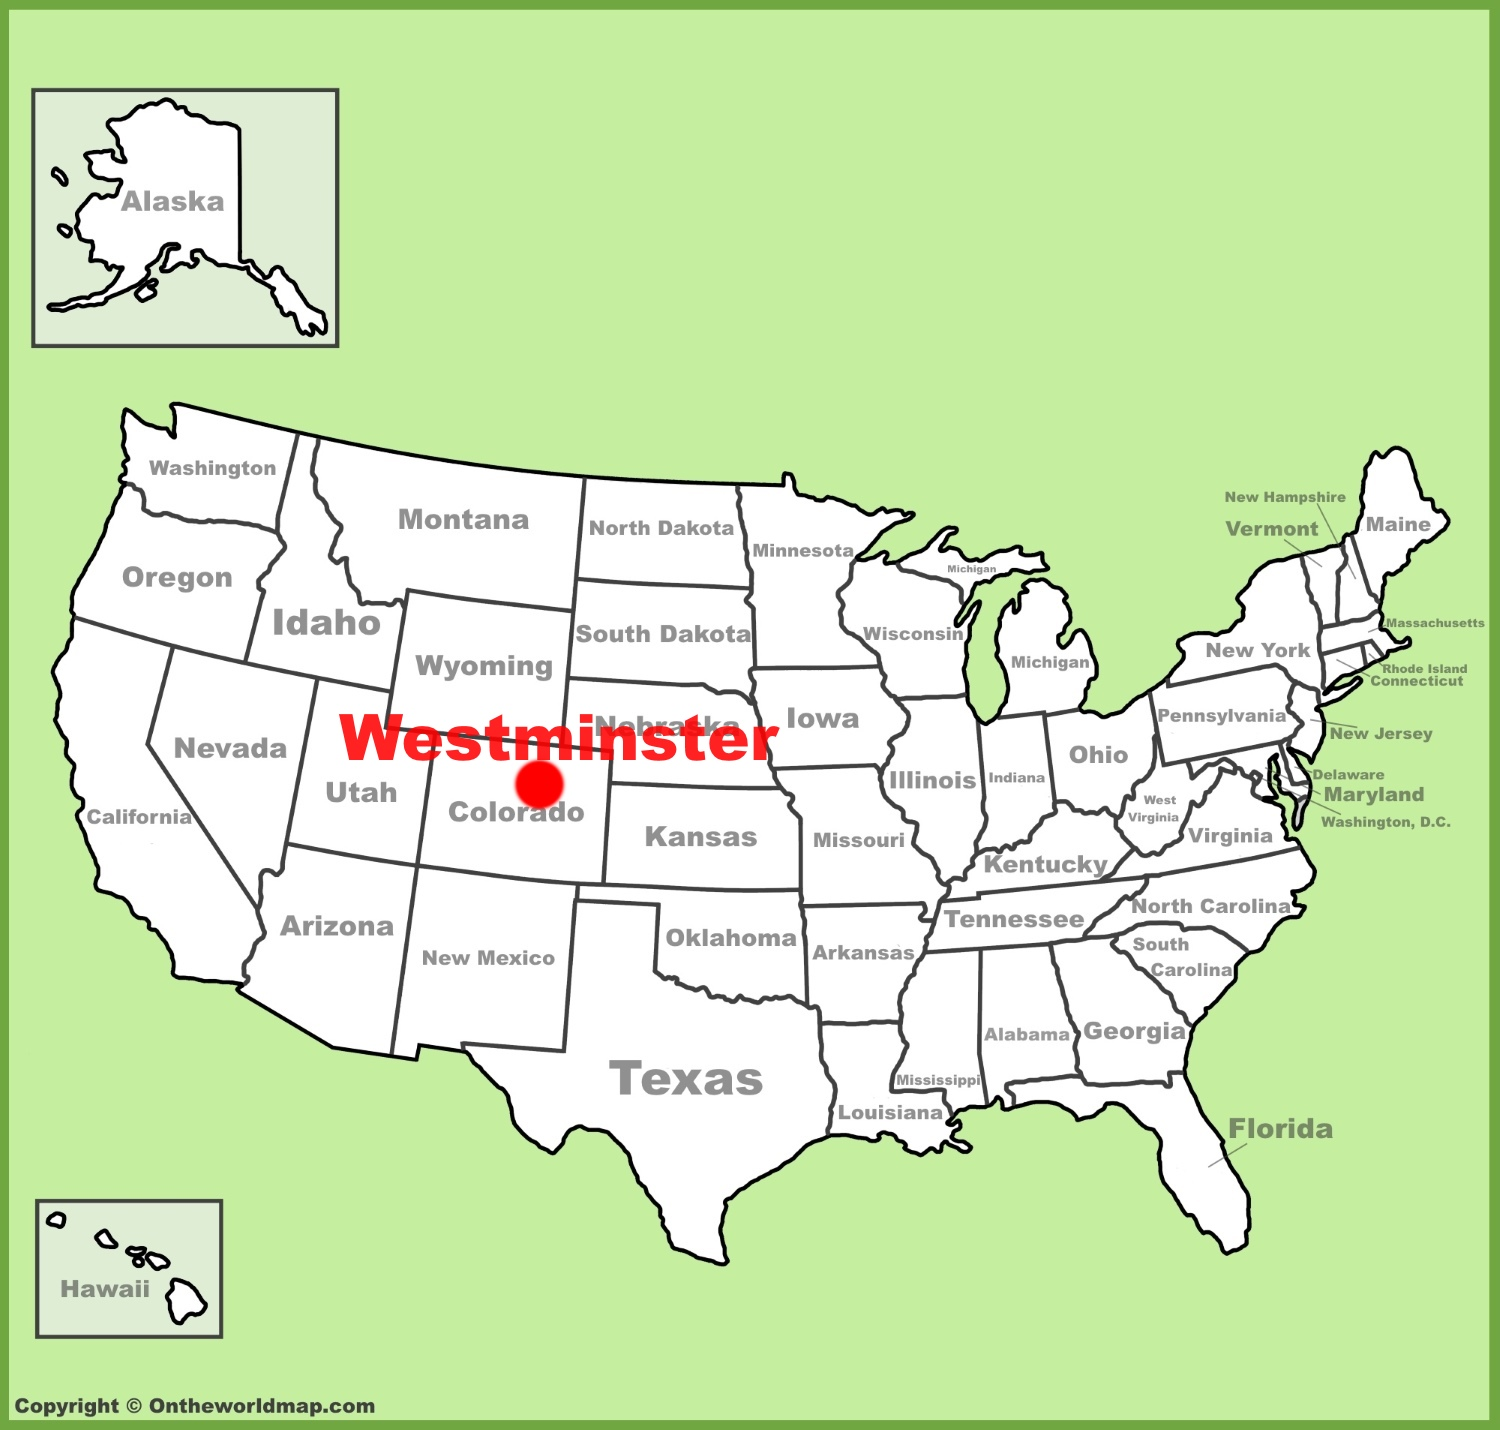 Westminster location on the US Map